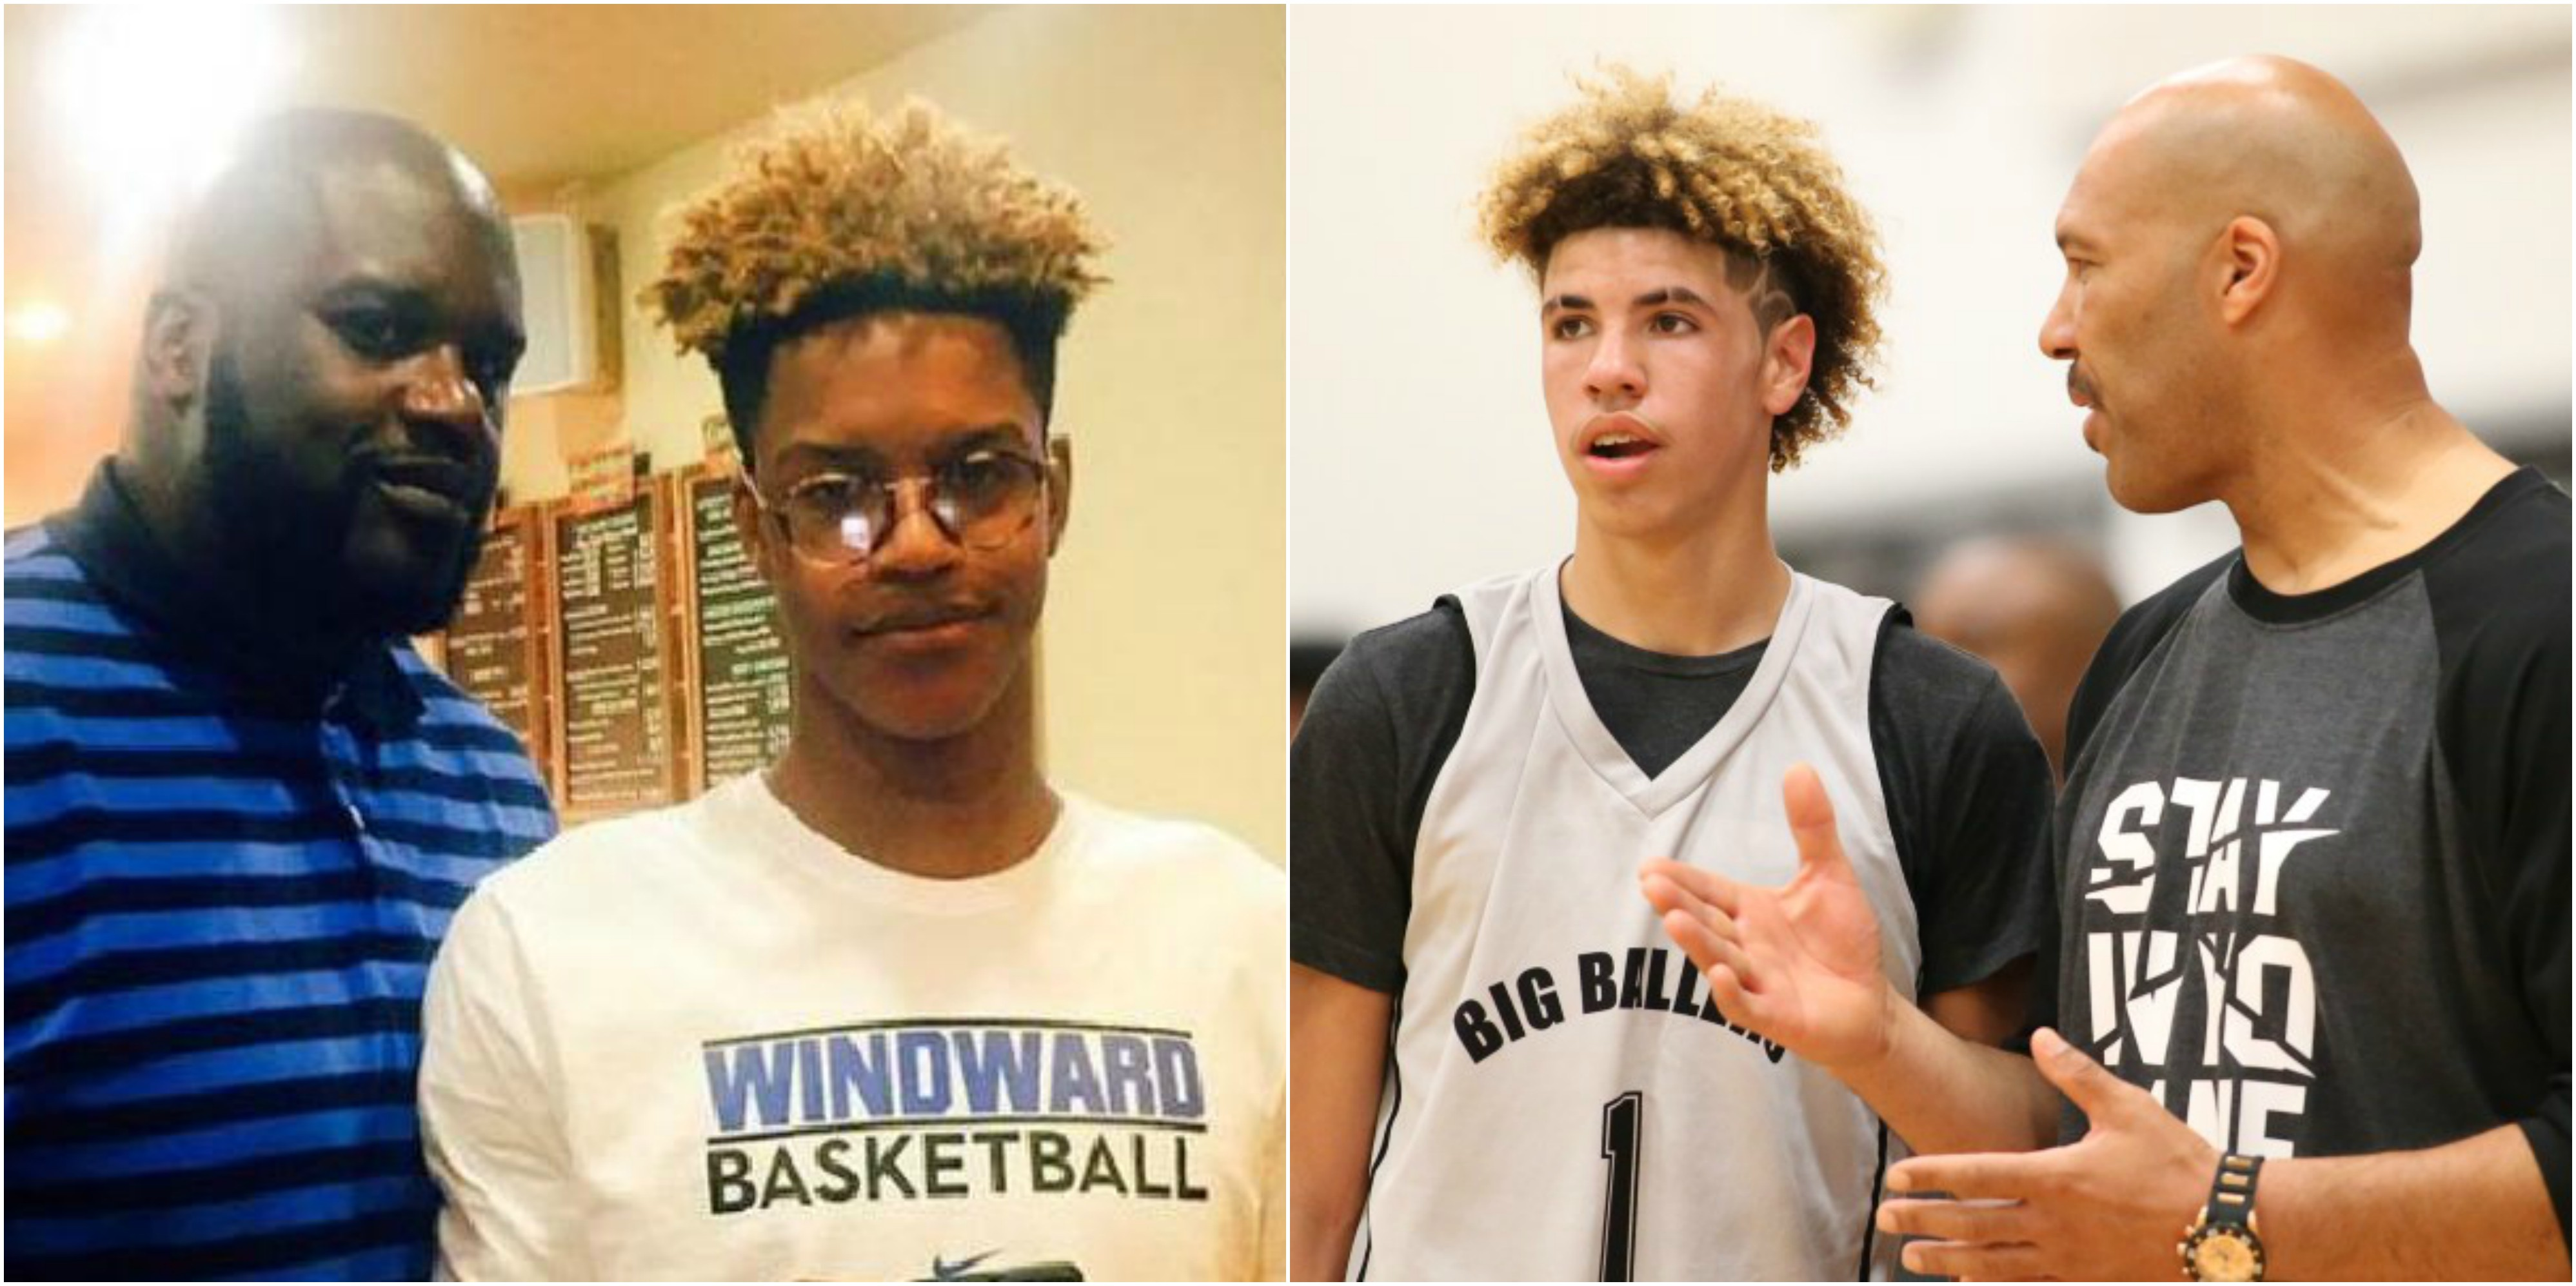 ball brothers. now that one of the ball brothers has made it into nba (that would be lonzo ball), all eyes have shifted to youngest ball, lamelo. m